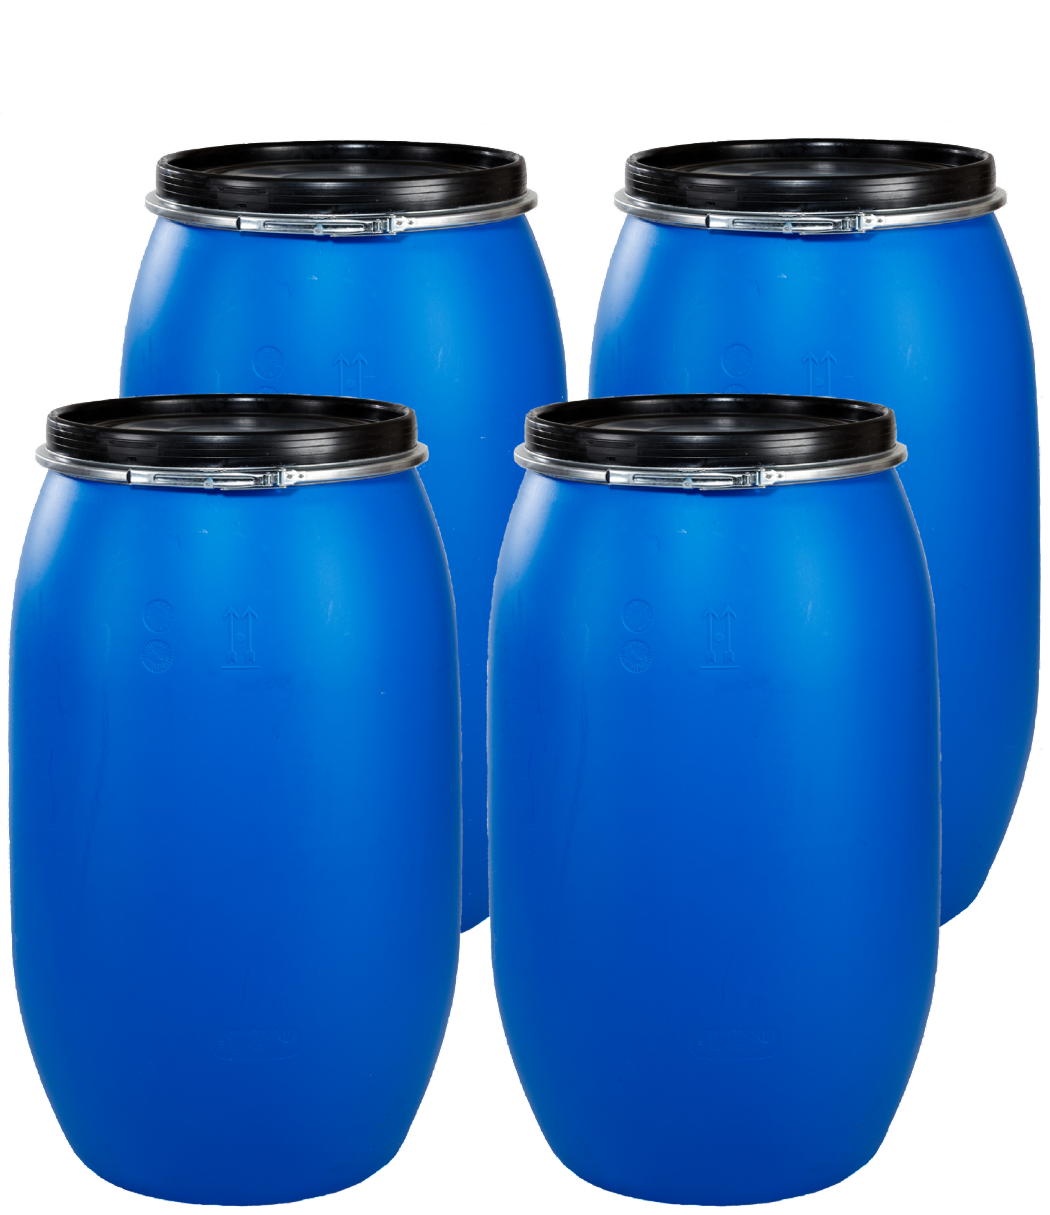 220 Litre Full Open Top Plastic Drum - Pack of 4 Drums